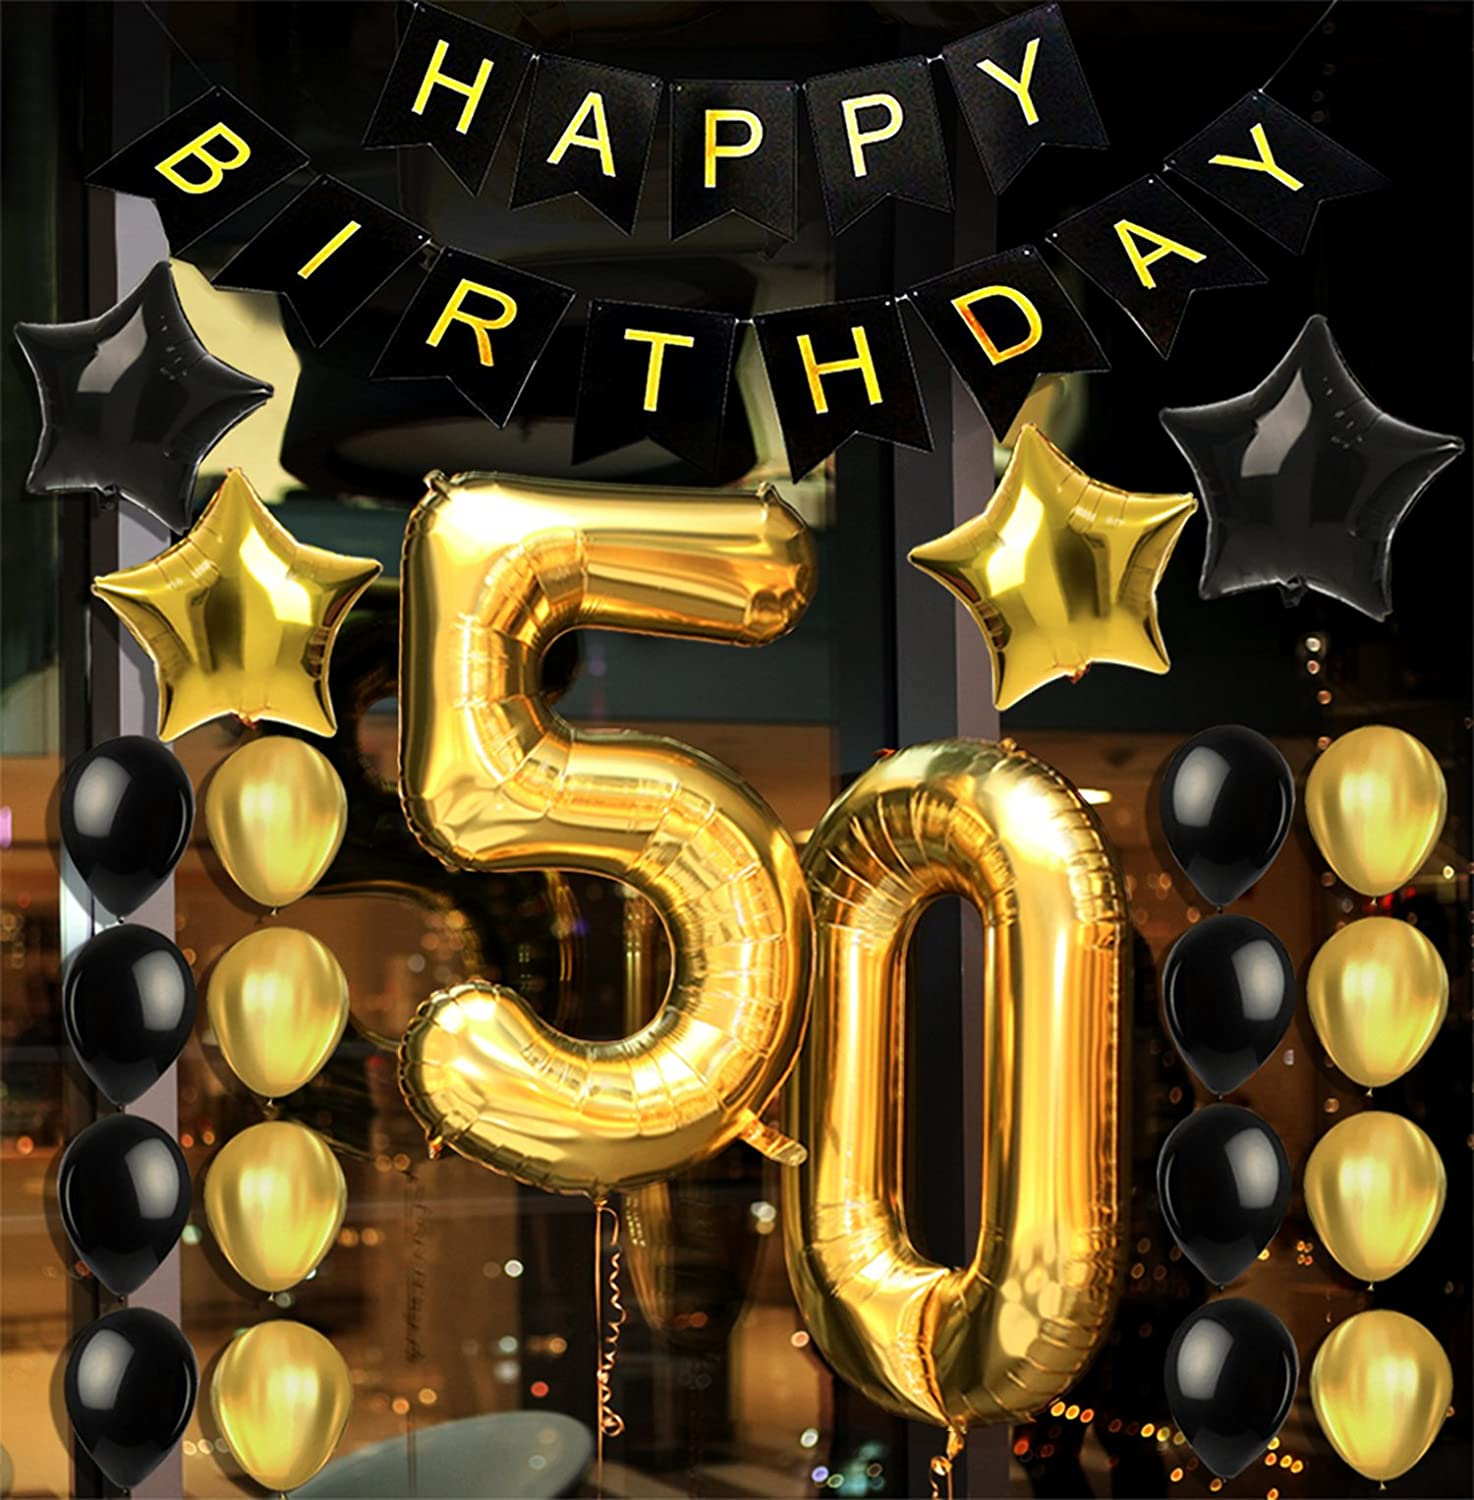 Amazon.com: 50th BIRTHDAY DECORATIONS & PARTY SUPPLIES - Party  Favors/Accessories Great For Men and Women's 50th Birthday Party &  Anniversary - Includes a 50th Birthday Decor Banner & 22 Gold-Black  Balloons Pack: